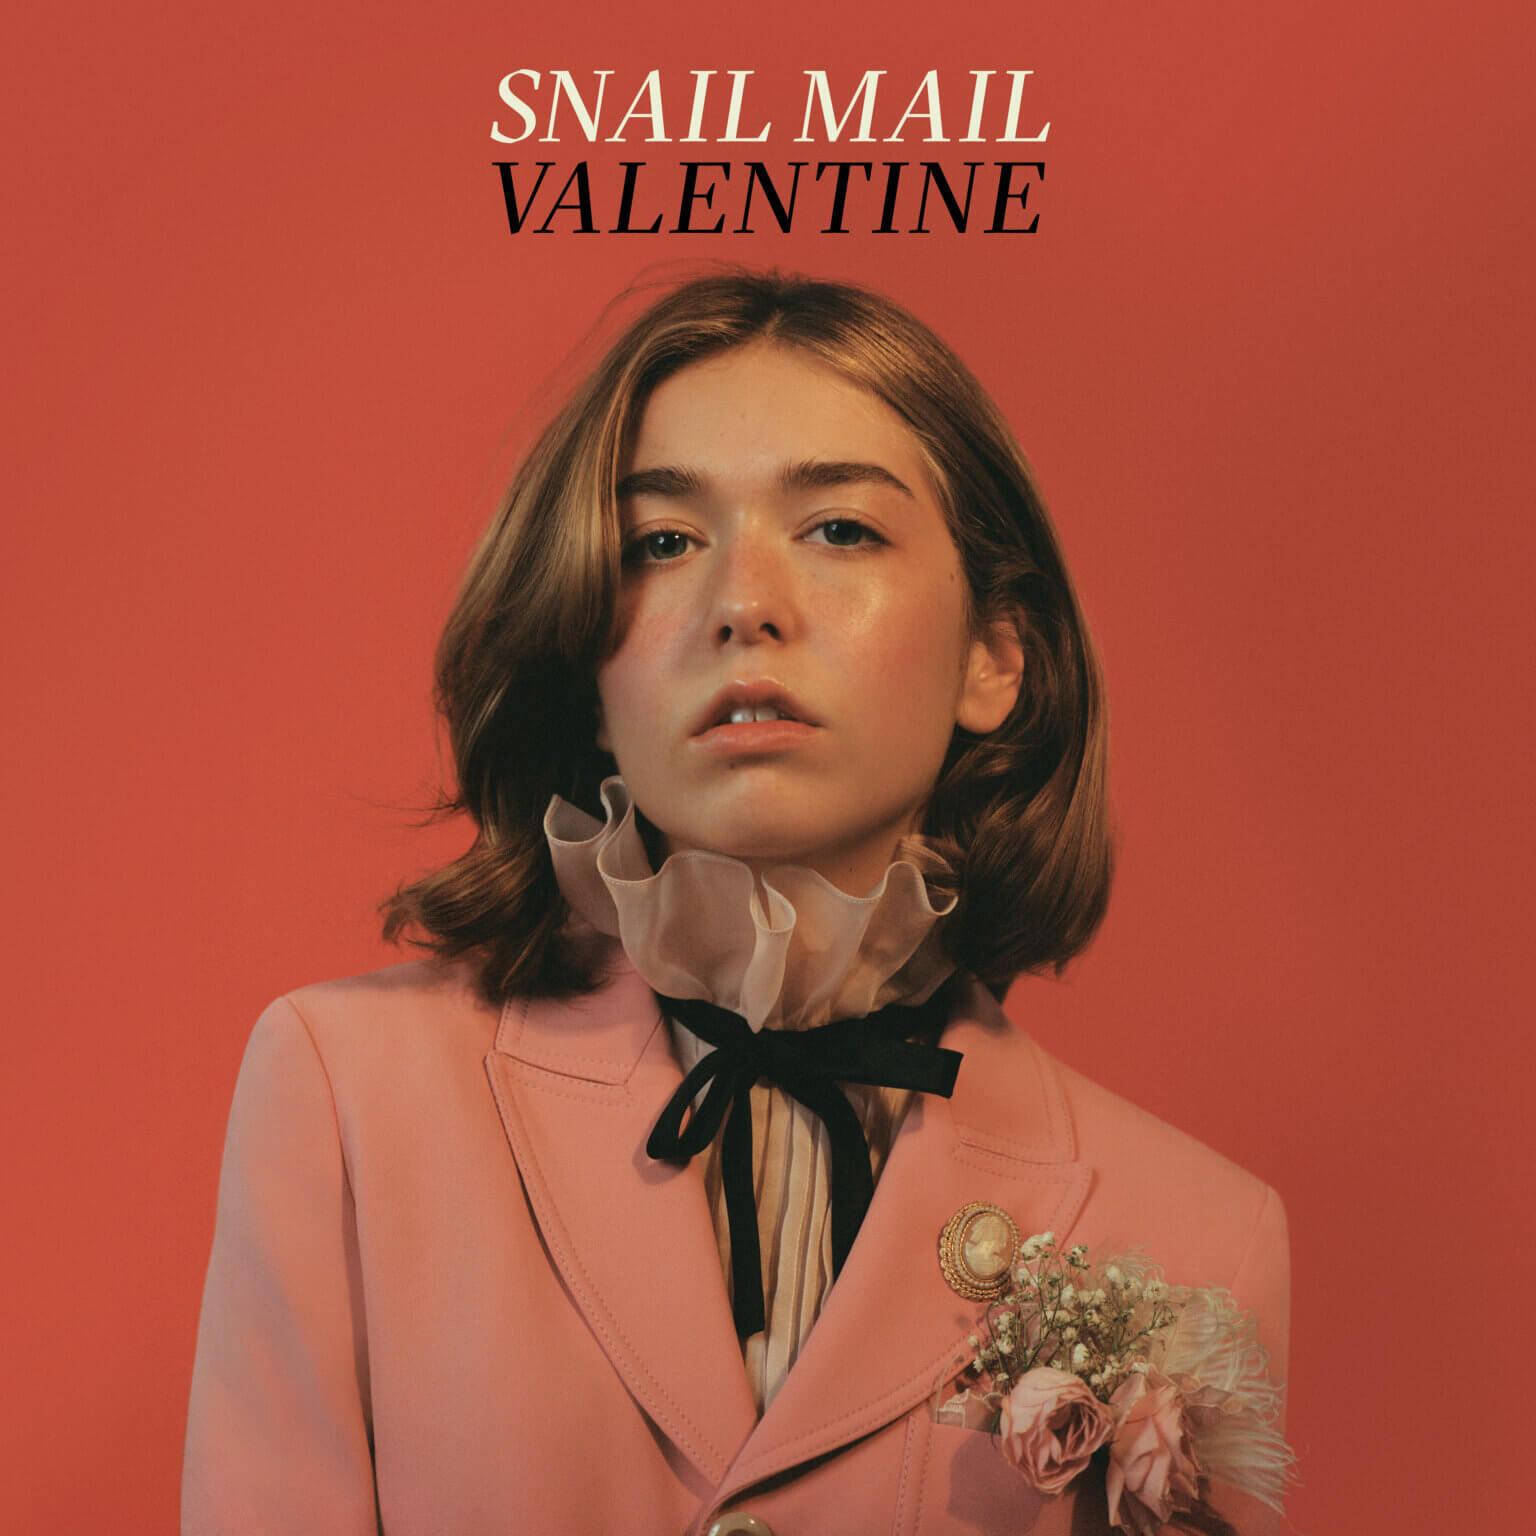 Snail Mail has announced her new LP Valentine will drop on November 5, via Matador Records